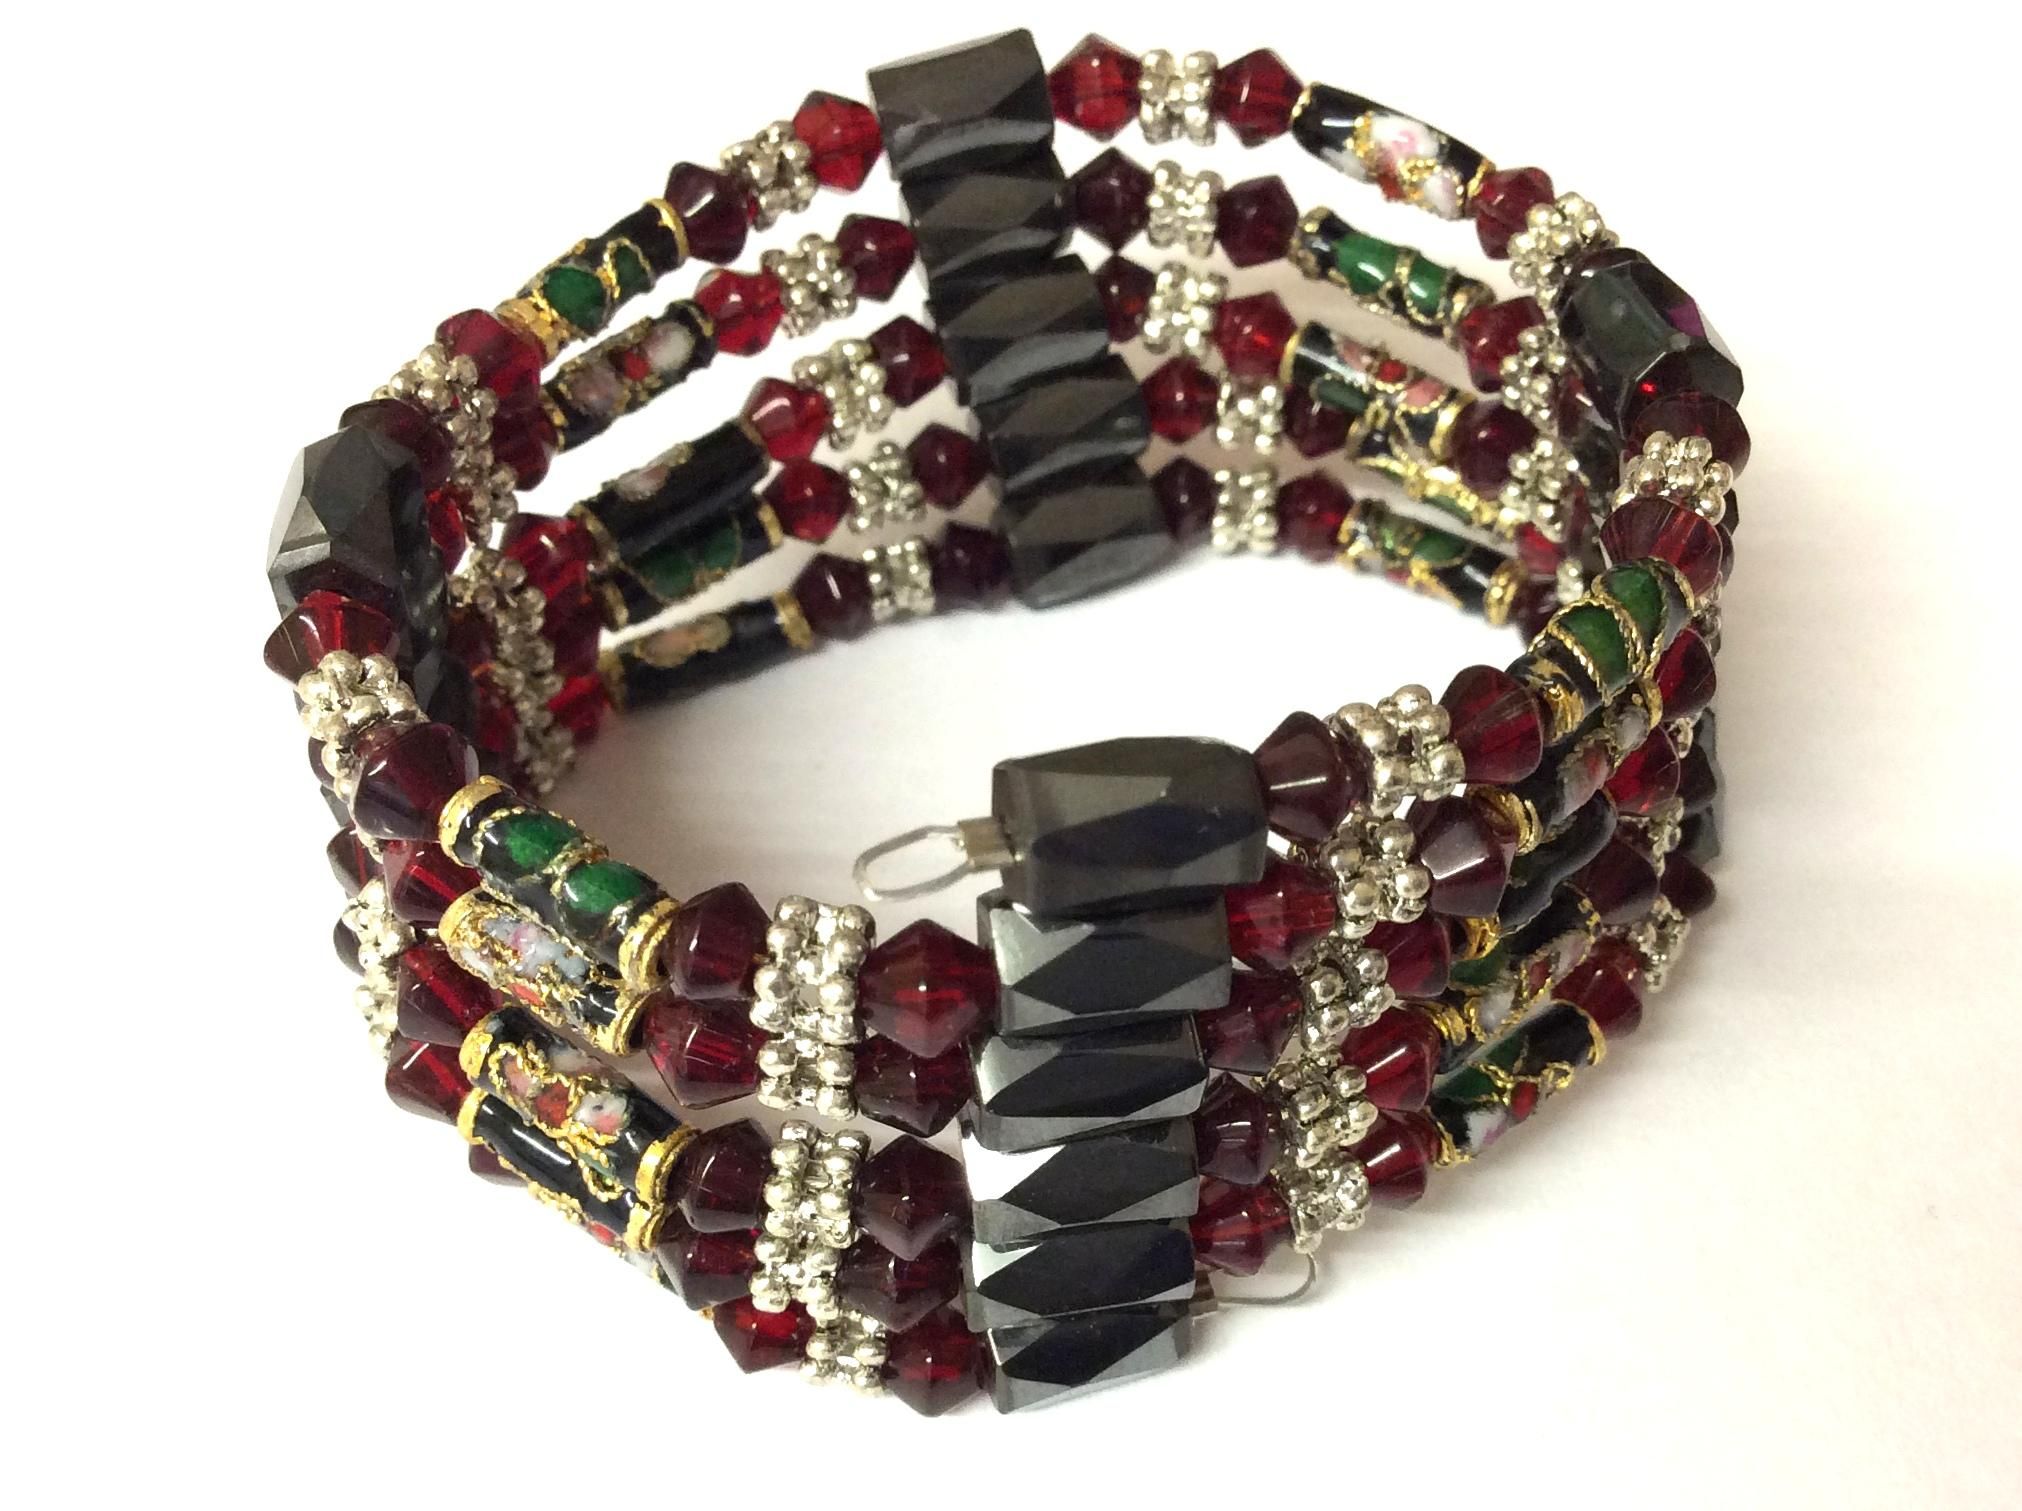 Magnetic Hematite Wrap Around Bracelet Dark Red